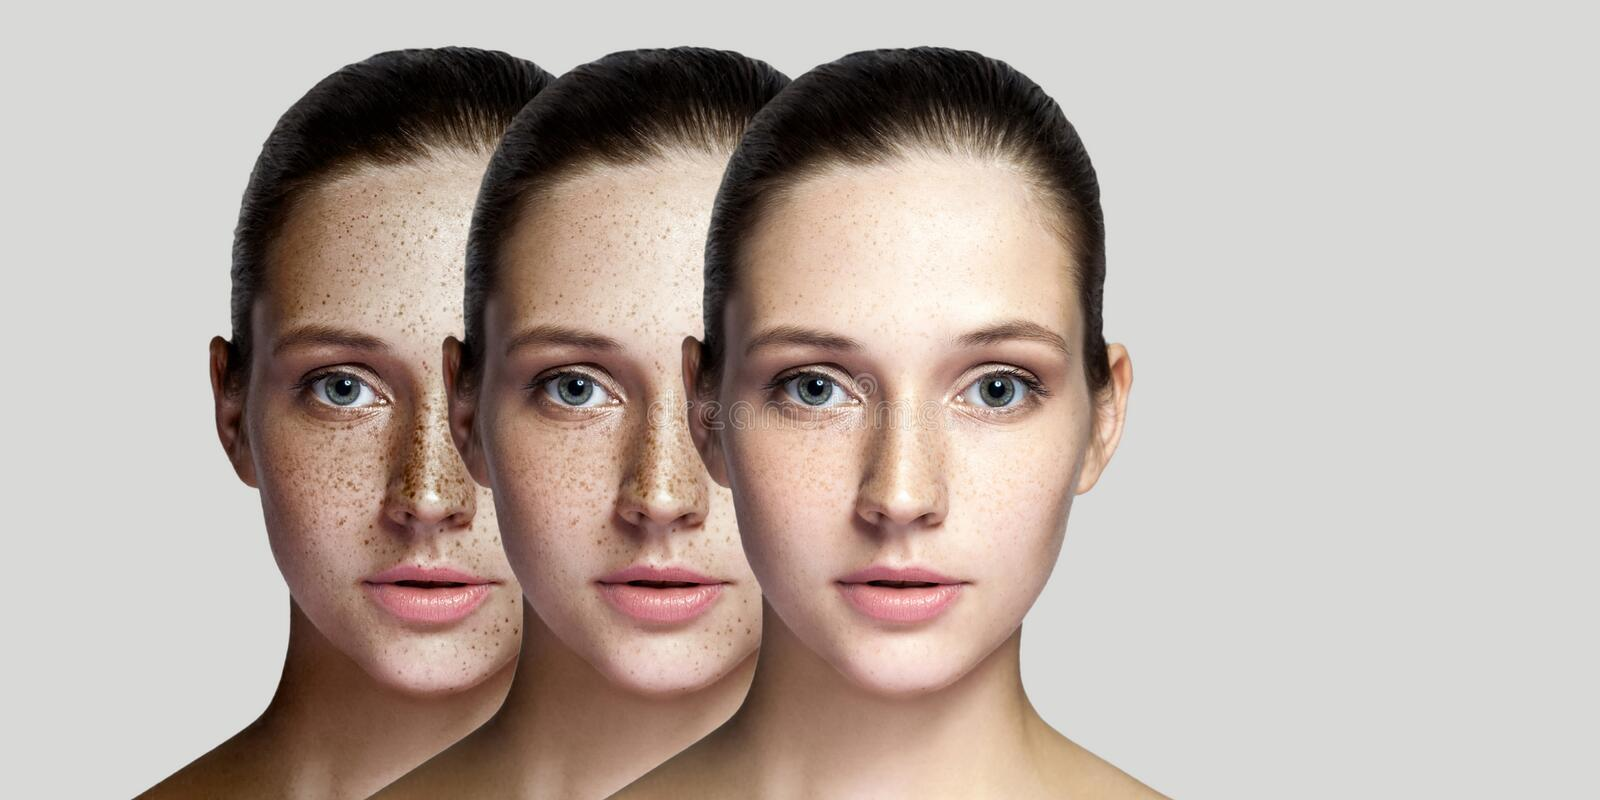 Step by step concept of healing and removing freckles. Closeup portrait of beautiful brunette woman after laser treatment on face royalty free stock photo